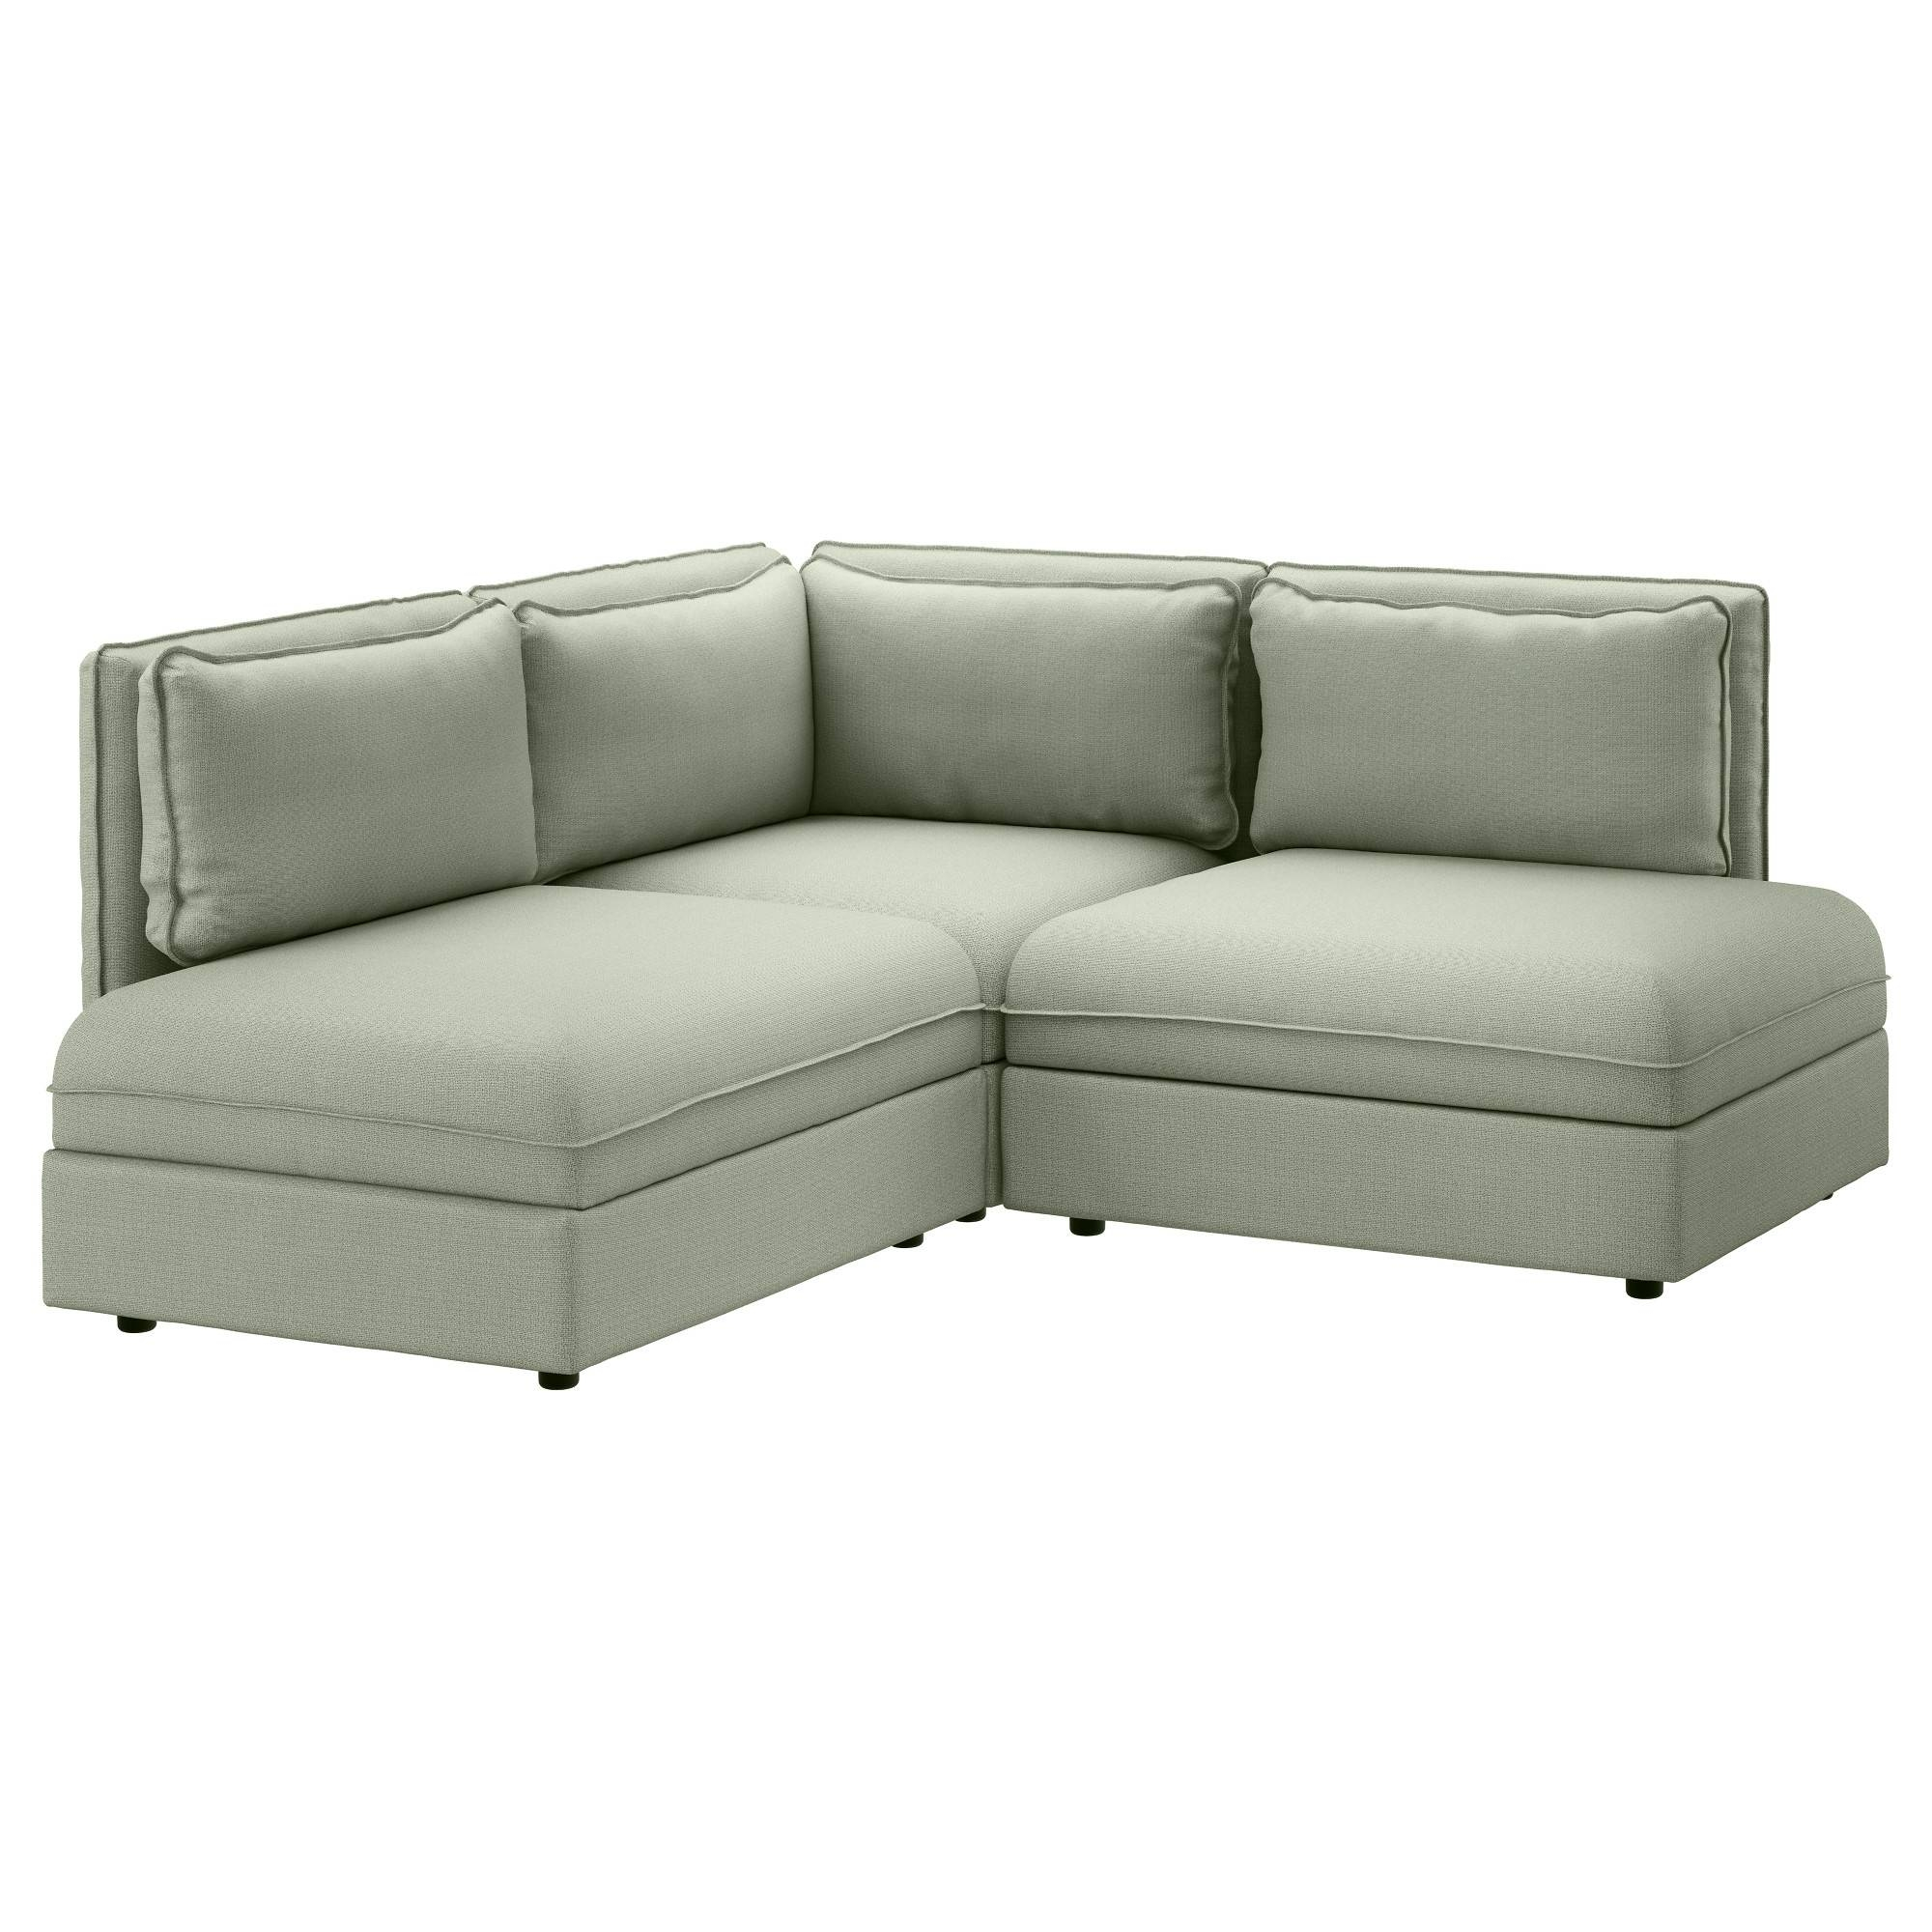 Fabric Sofas - Modern & Contemporary - Ikea pertaining to Backless Chaise Sofa (Image 10 of 30)